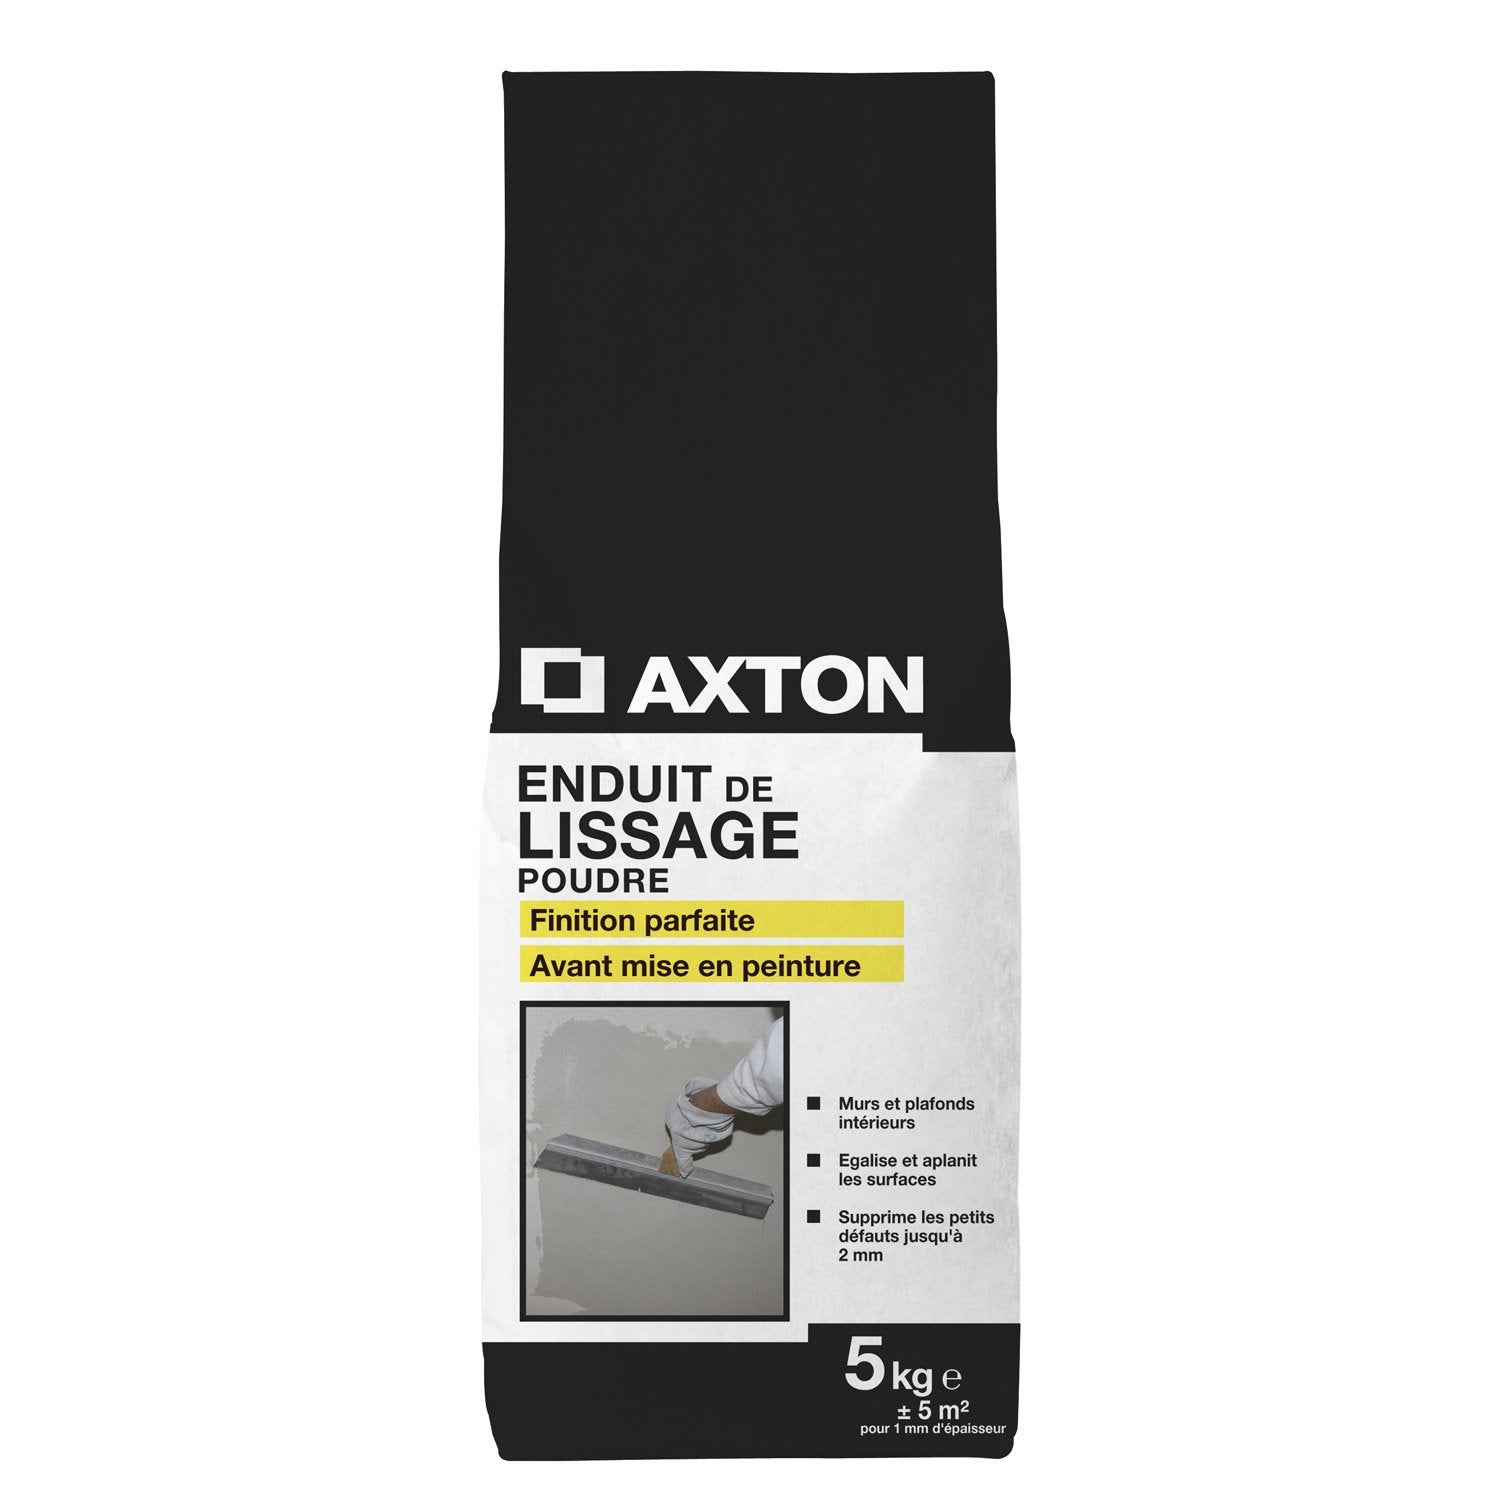 Enduit de lissage axton 5 kg leroy merlin for Video enduit de lissage